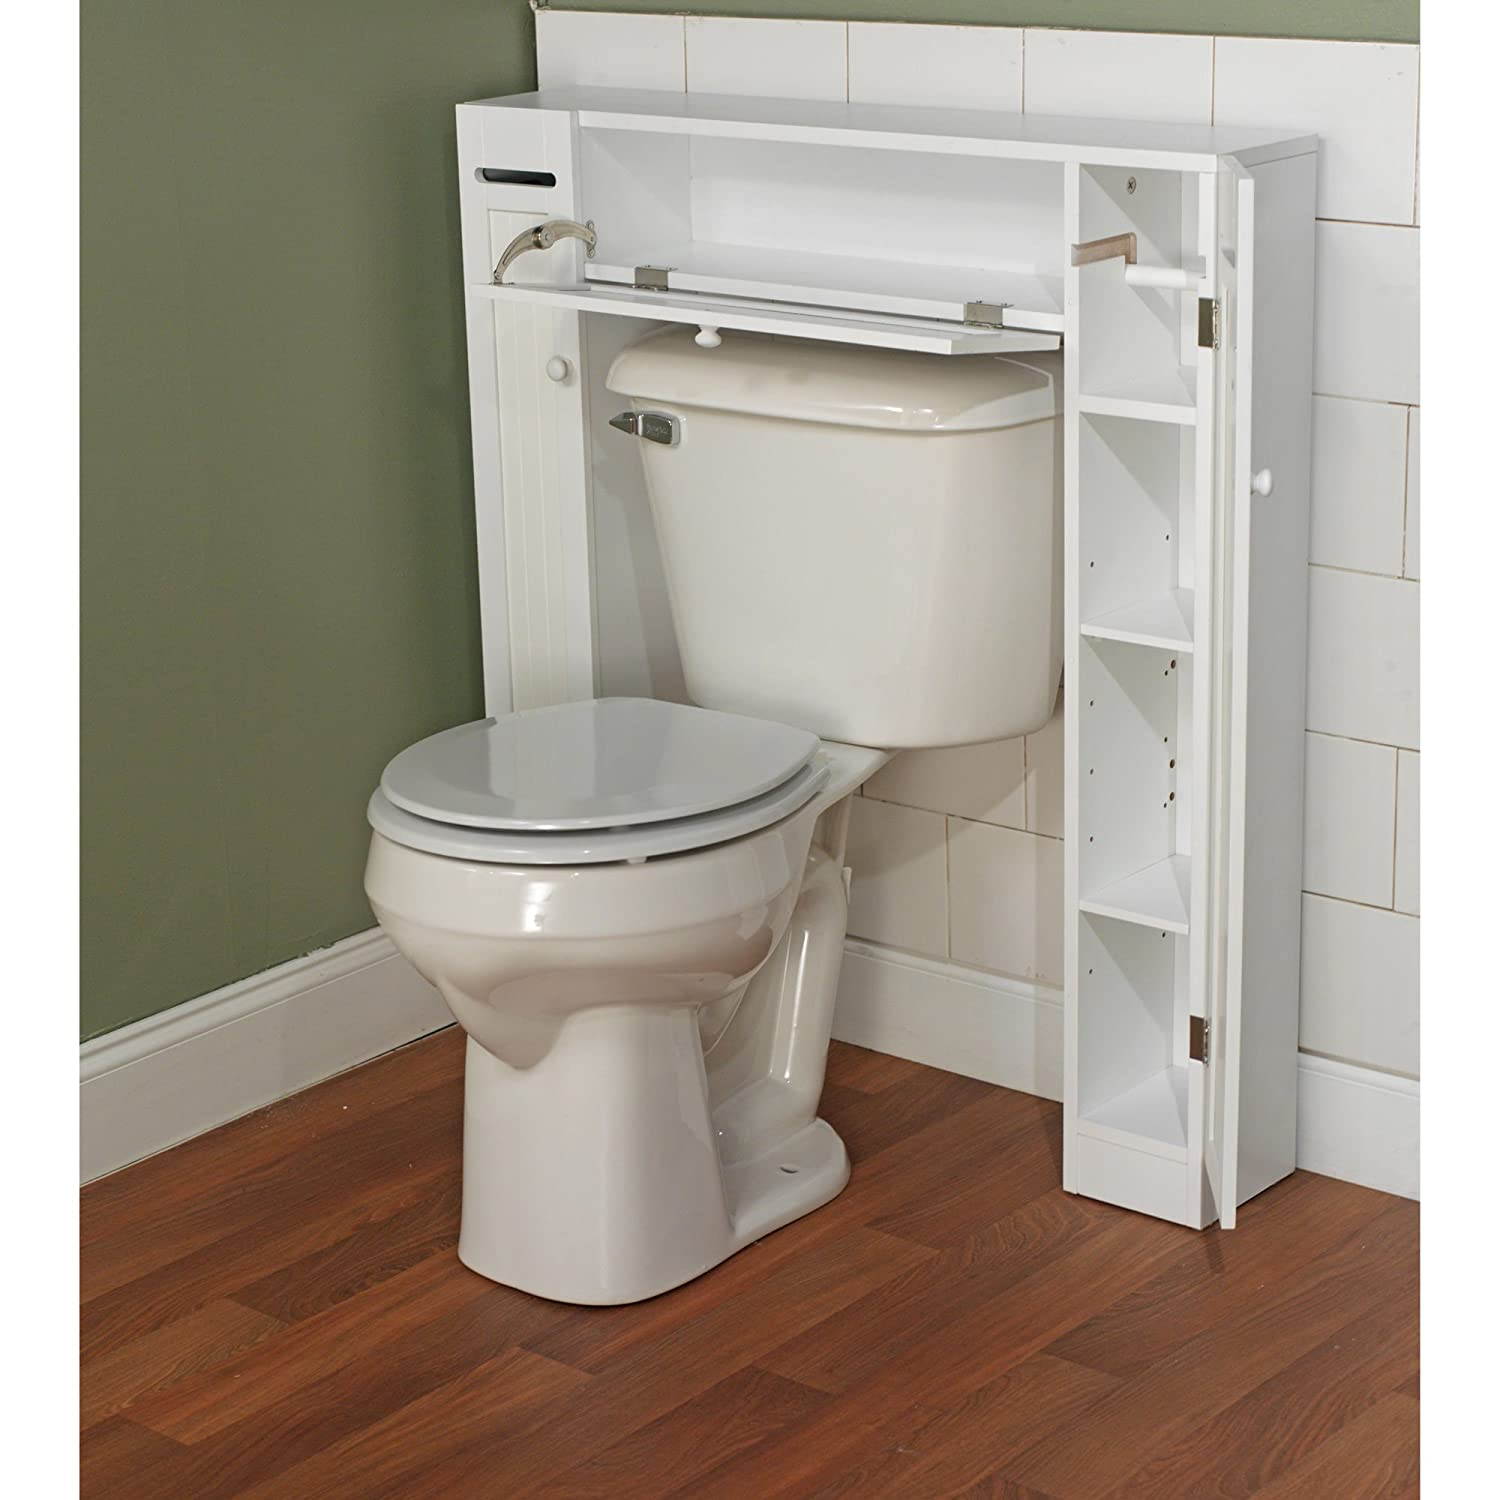 Bathroom cabinet space saver -  Over The Toilet Space Saver By Simple Living 1 Center Cabinet And 2 Side Cabinets In White Wood Material Gives Extra Storage For Every Bathroom